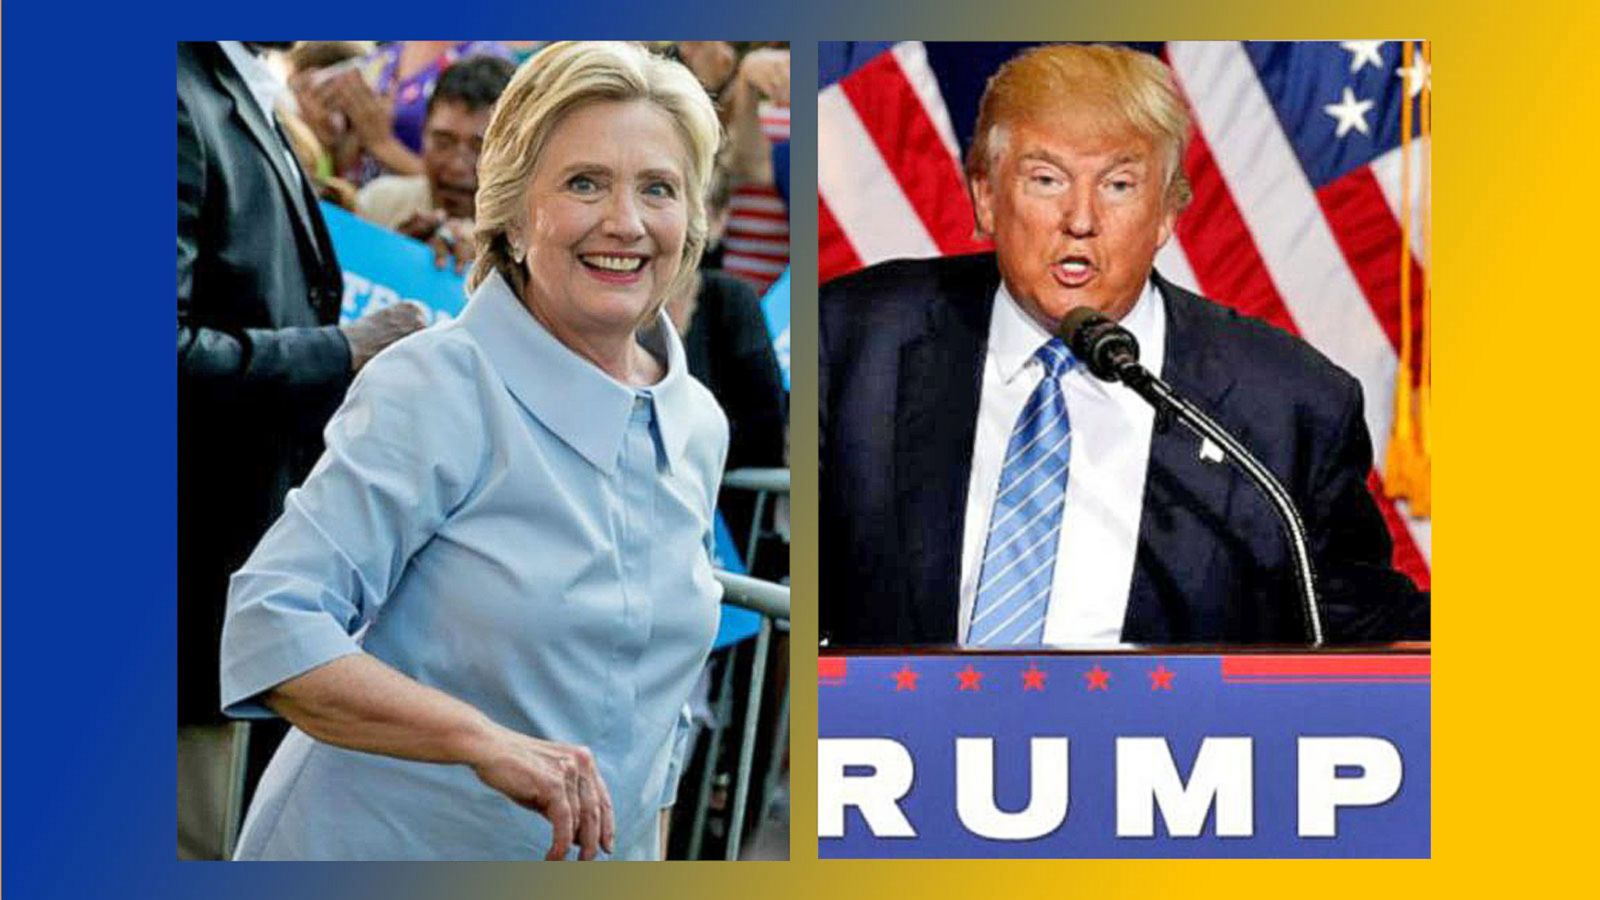 VIDEO: Hillary Clinton Leads Donald Trump by 12 in New Poll